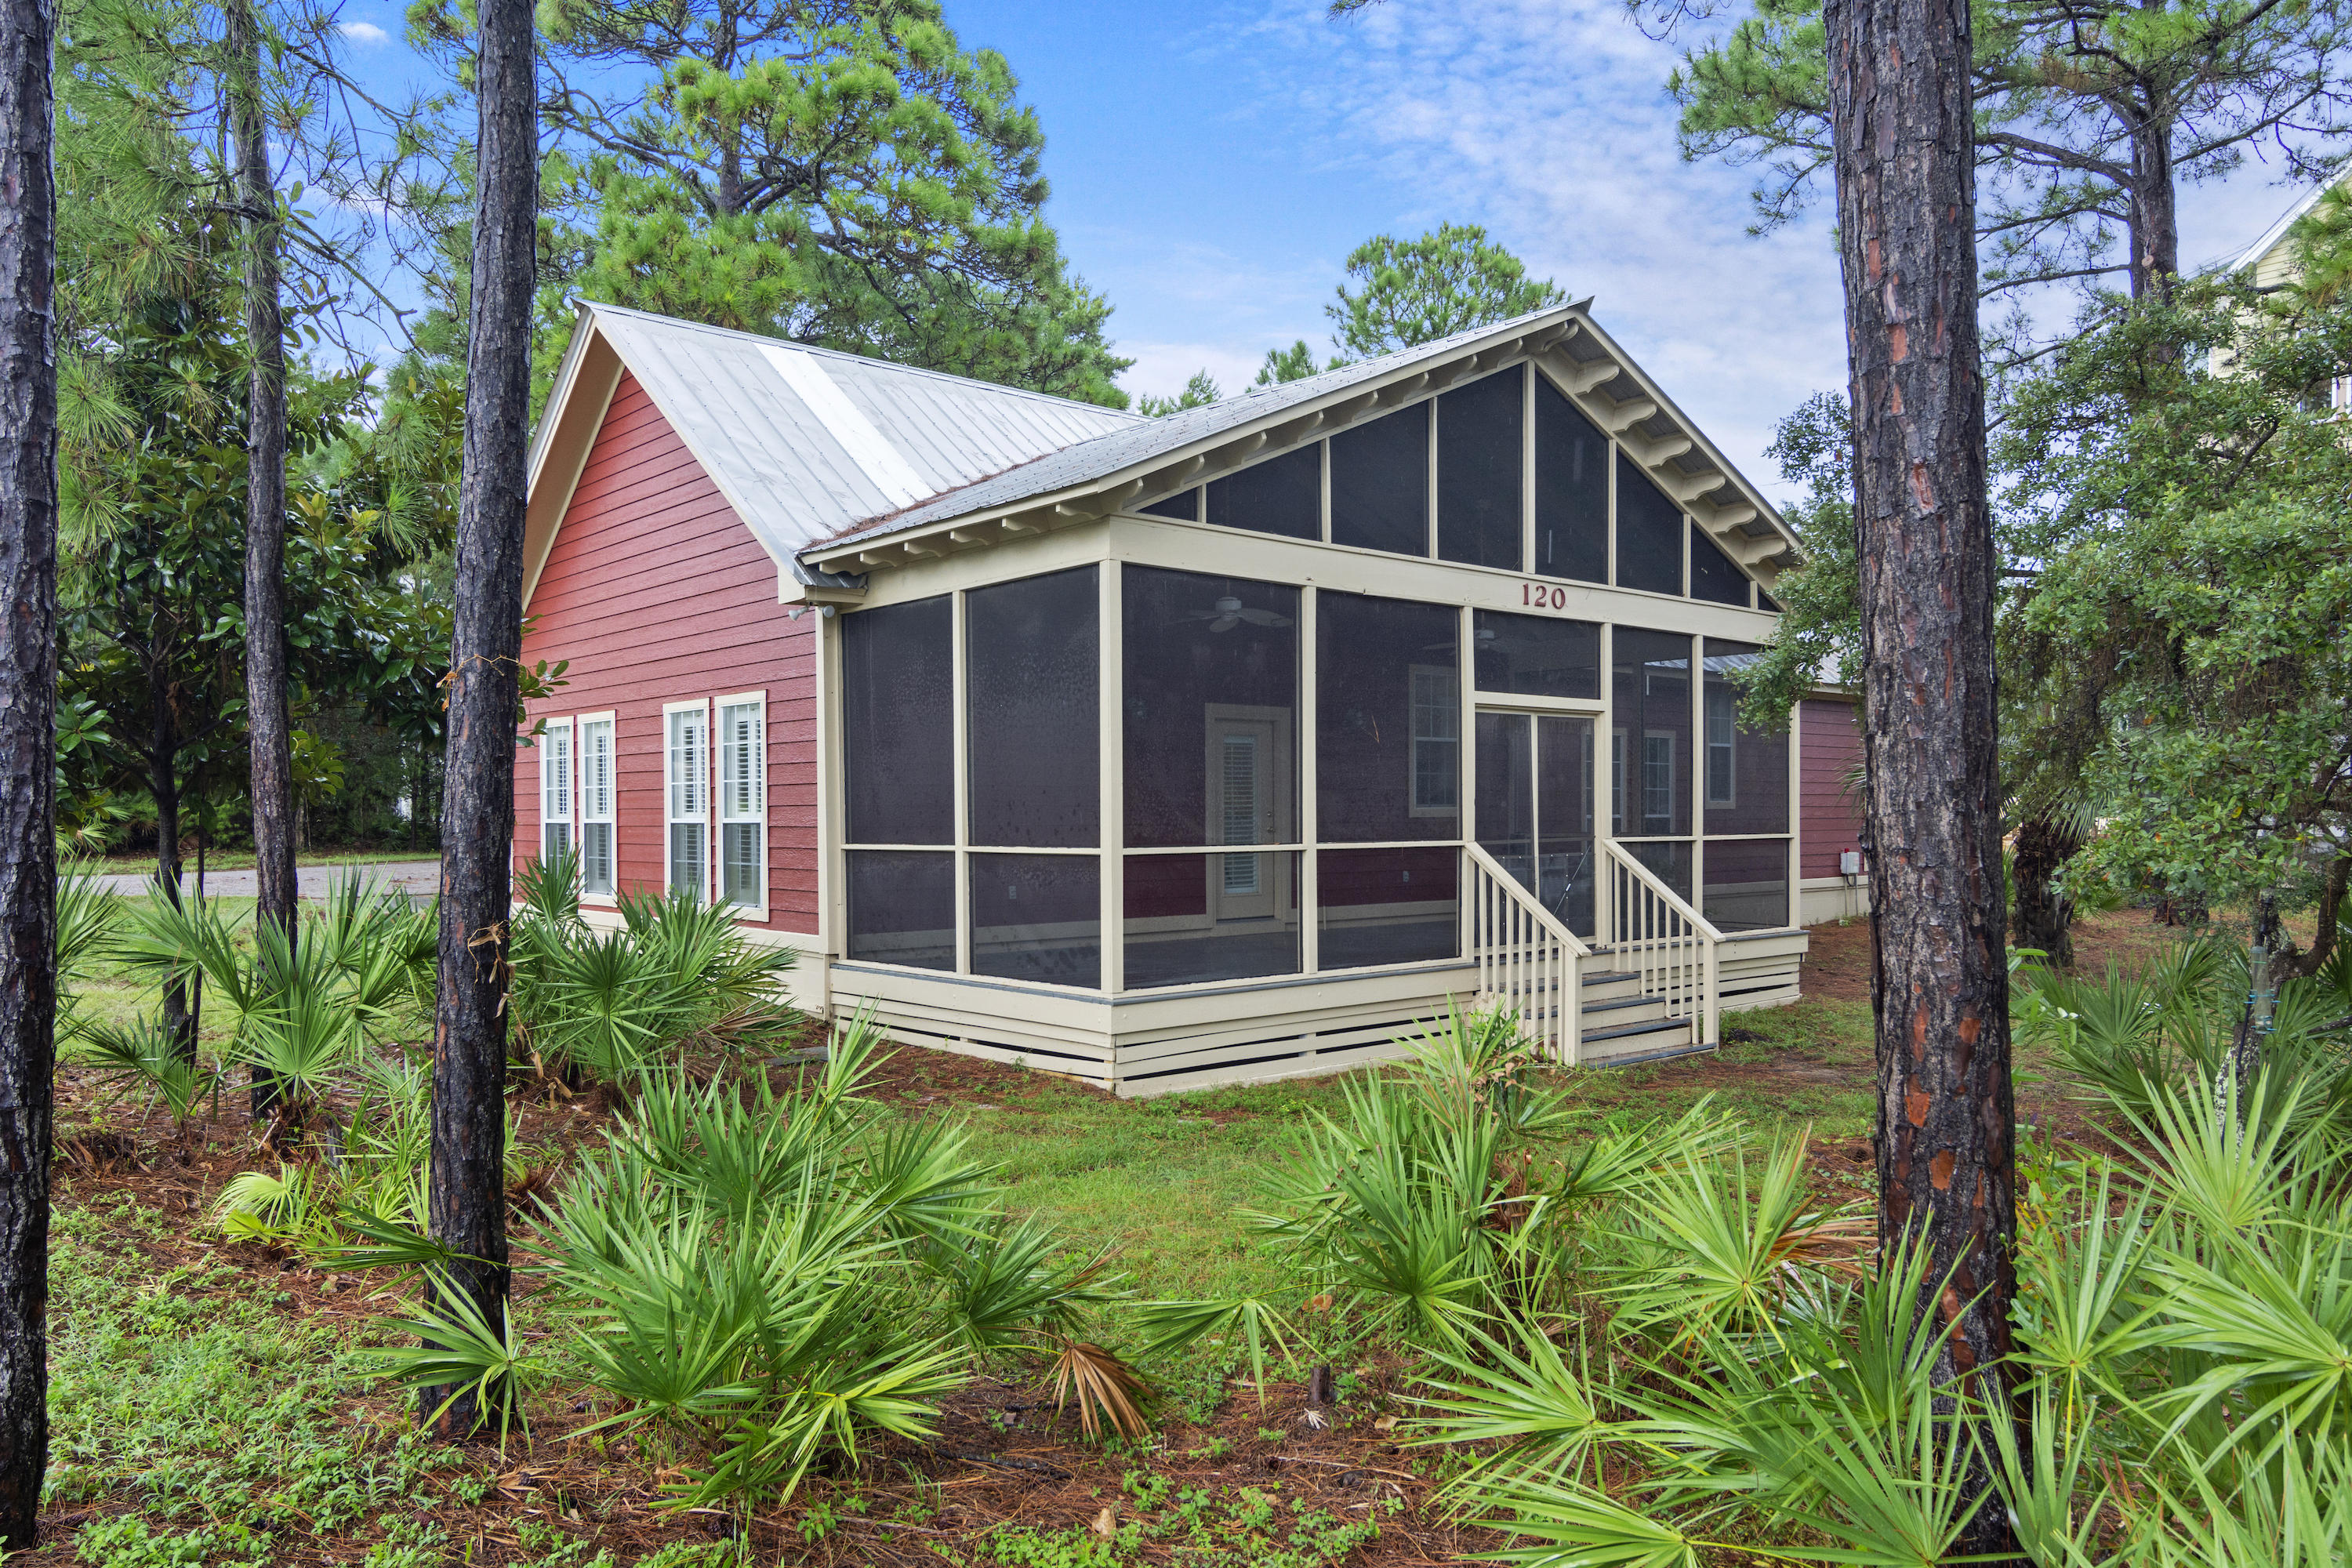 Are you looking for a place close to the water off of 30a with no HOA? And a 5 minute walk to the Stallworth lake access to the Gulf of Mexico. If so this is the property for you.  Great single story A frame home on a large corner lot, metal roof,  just off of 98 and 30A and within walking distance to Butler Elementary School.  Plantation Shutters on some of the windows, wood floors in bedrooms, large screen in porch (29x11) and large covered porch in the back. Open kitchen to the dining area and Living area.  Kitchen offers stainless steel appliances, granite countertops, new gas range and new refrigerator.  Breakfast bar over looks Living area and gorgeous stain glass in the kitchen.  New Cambria countertops in both bathrooms. Exterior has been recently painted.